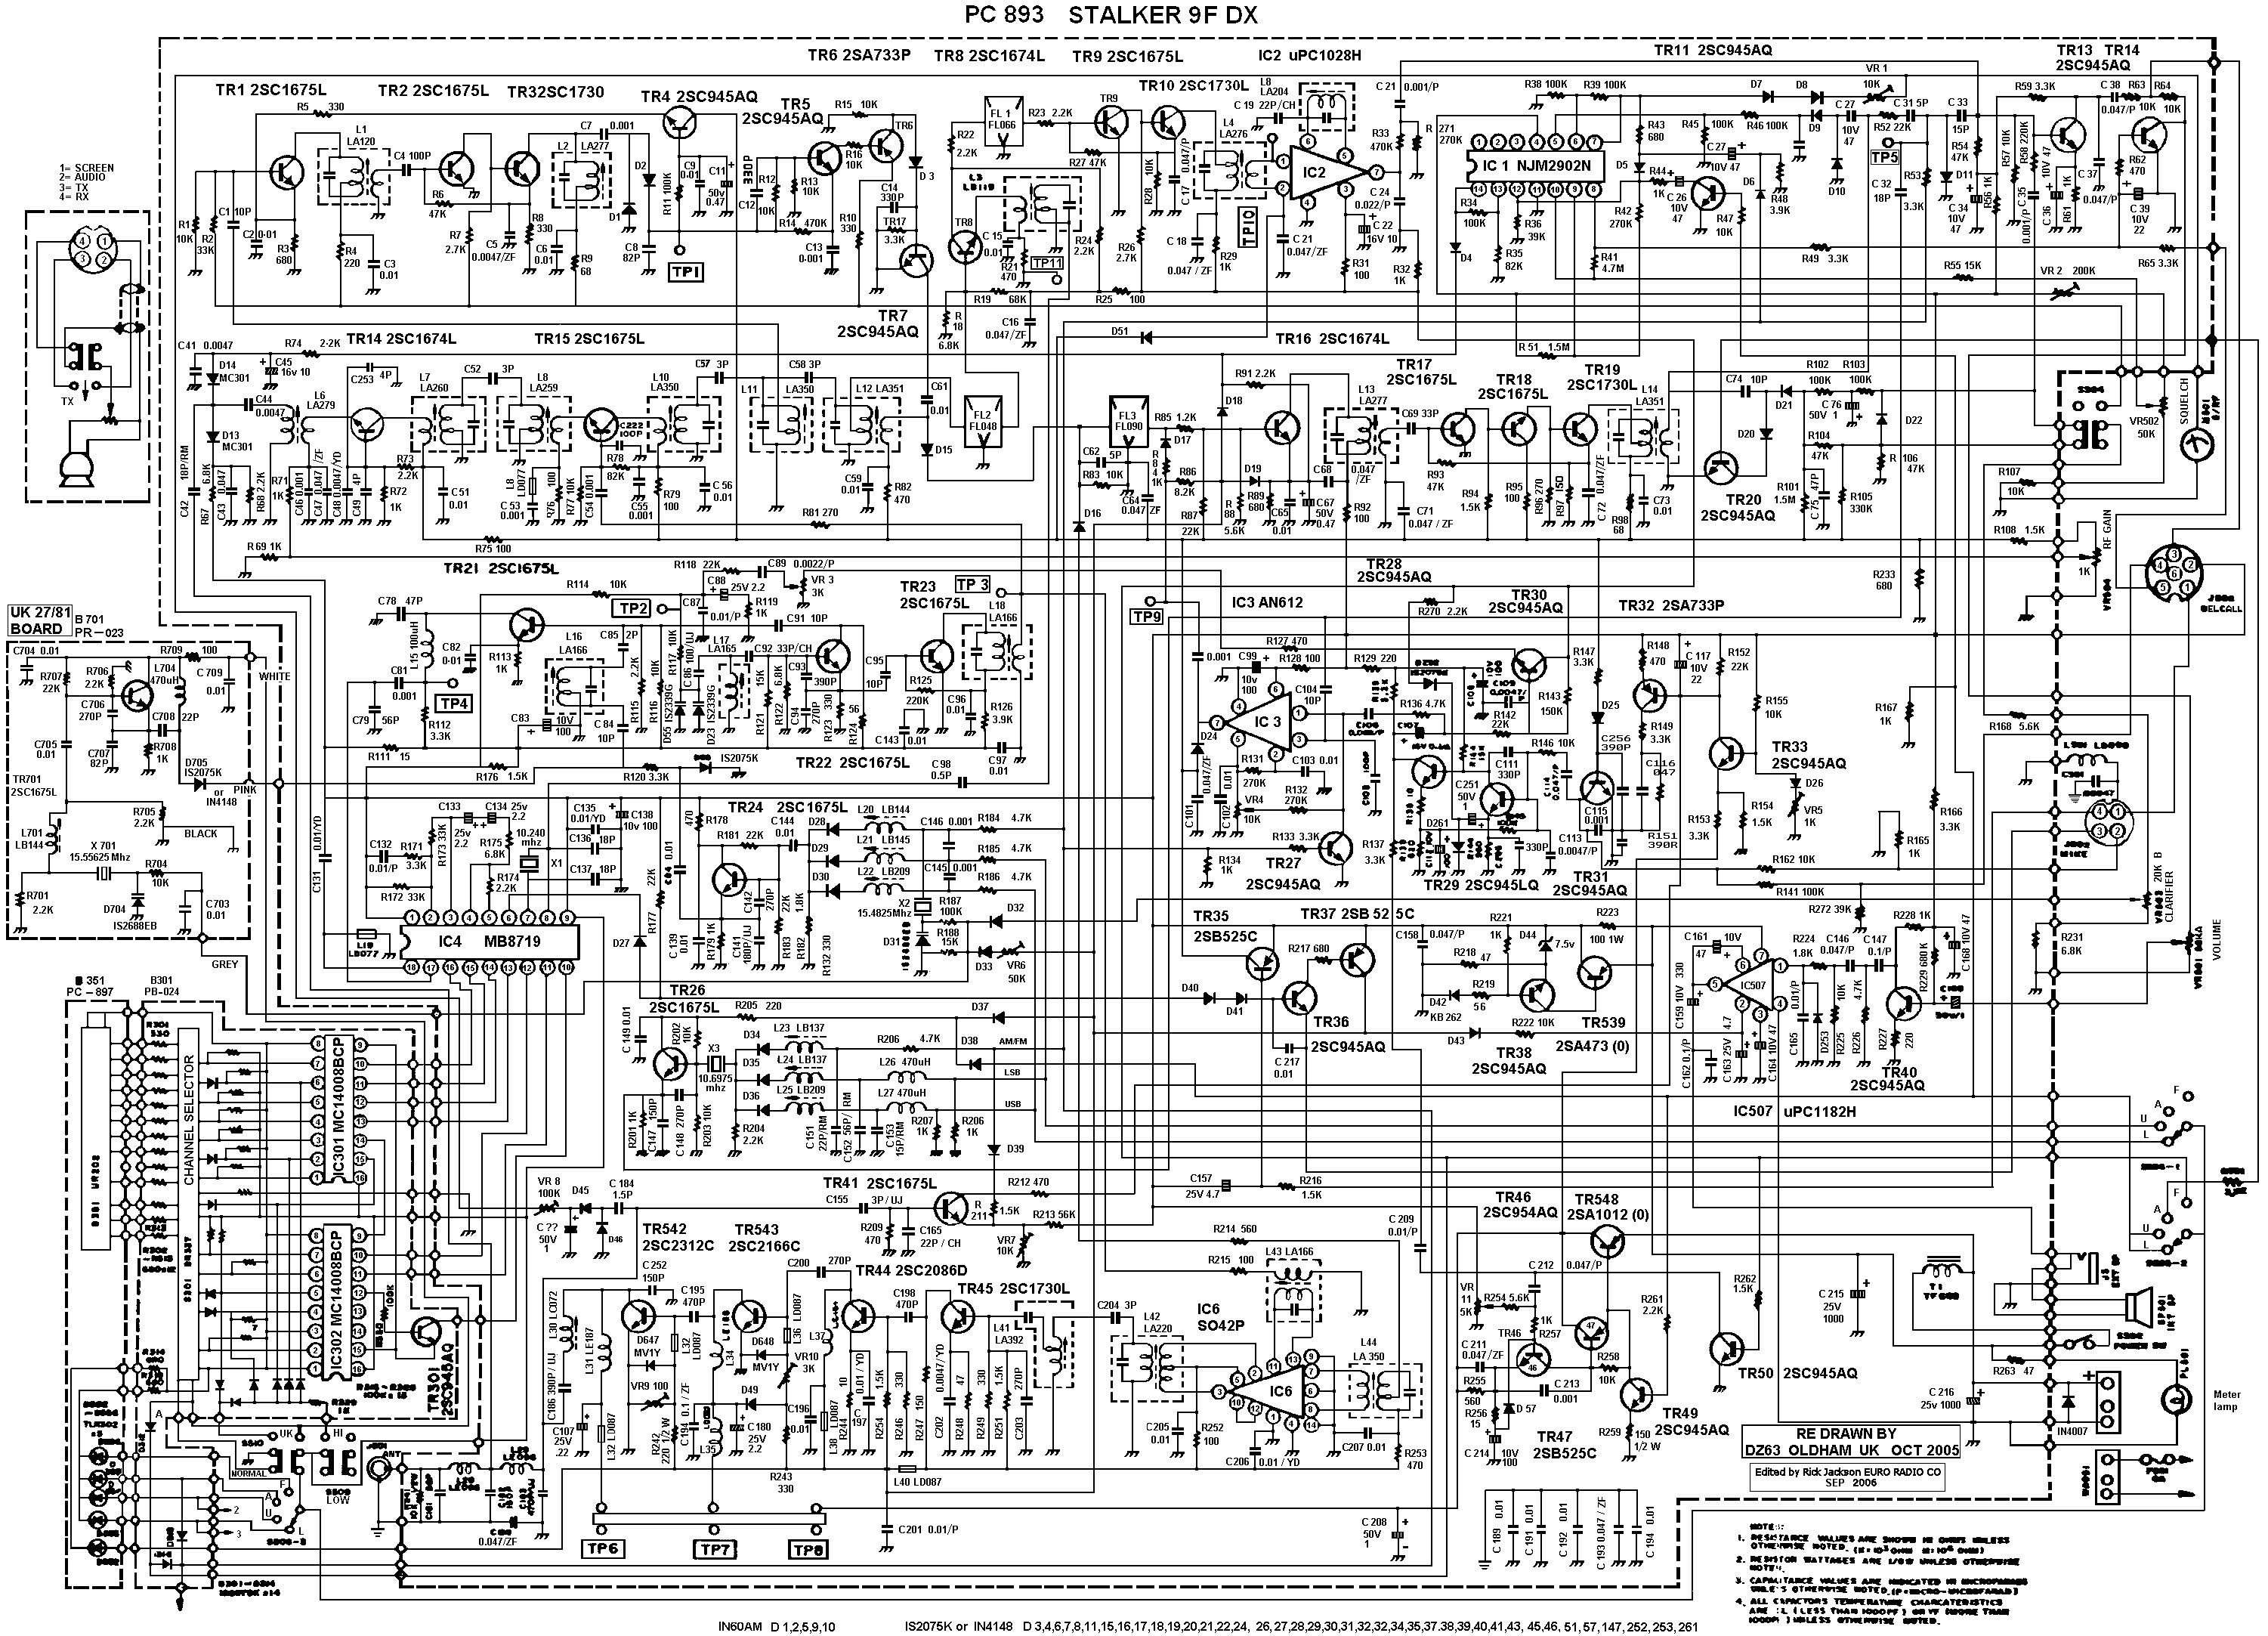 381f91856c8e3d5a8624ba977cca4625 image result for circuit diagram client_iot_平面 pinterest circuit diagram pdf at soozxer.org